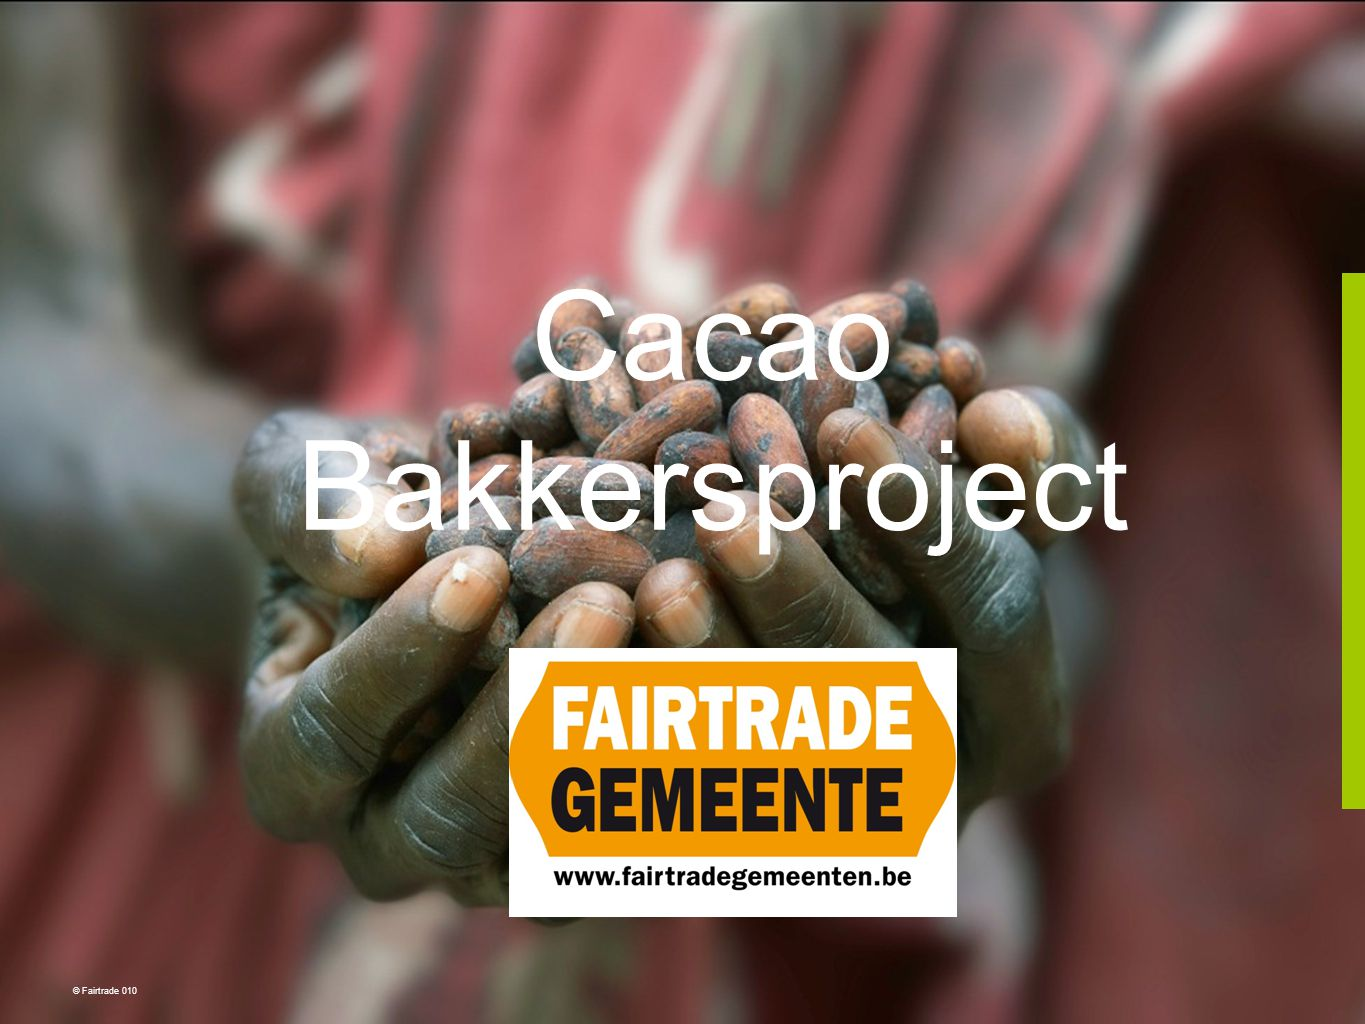 Cacao Bakkersproject © Fairtrade 010